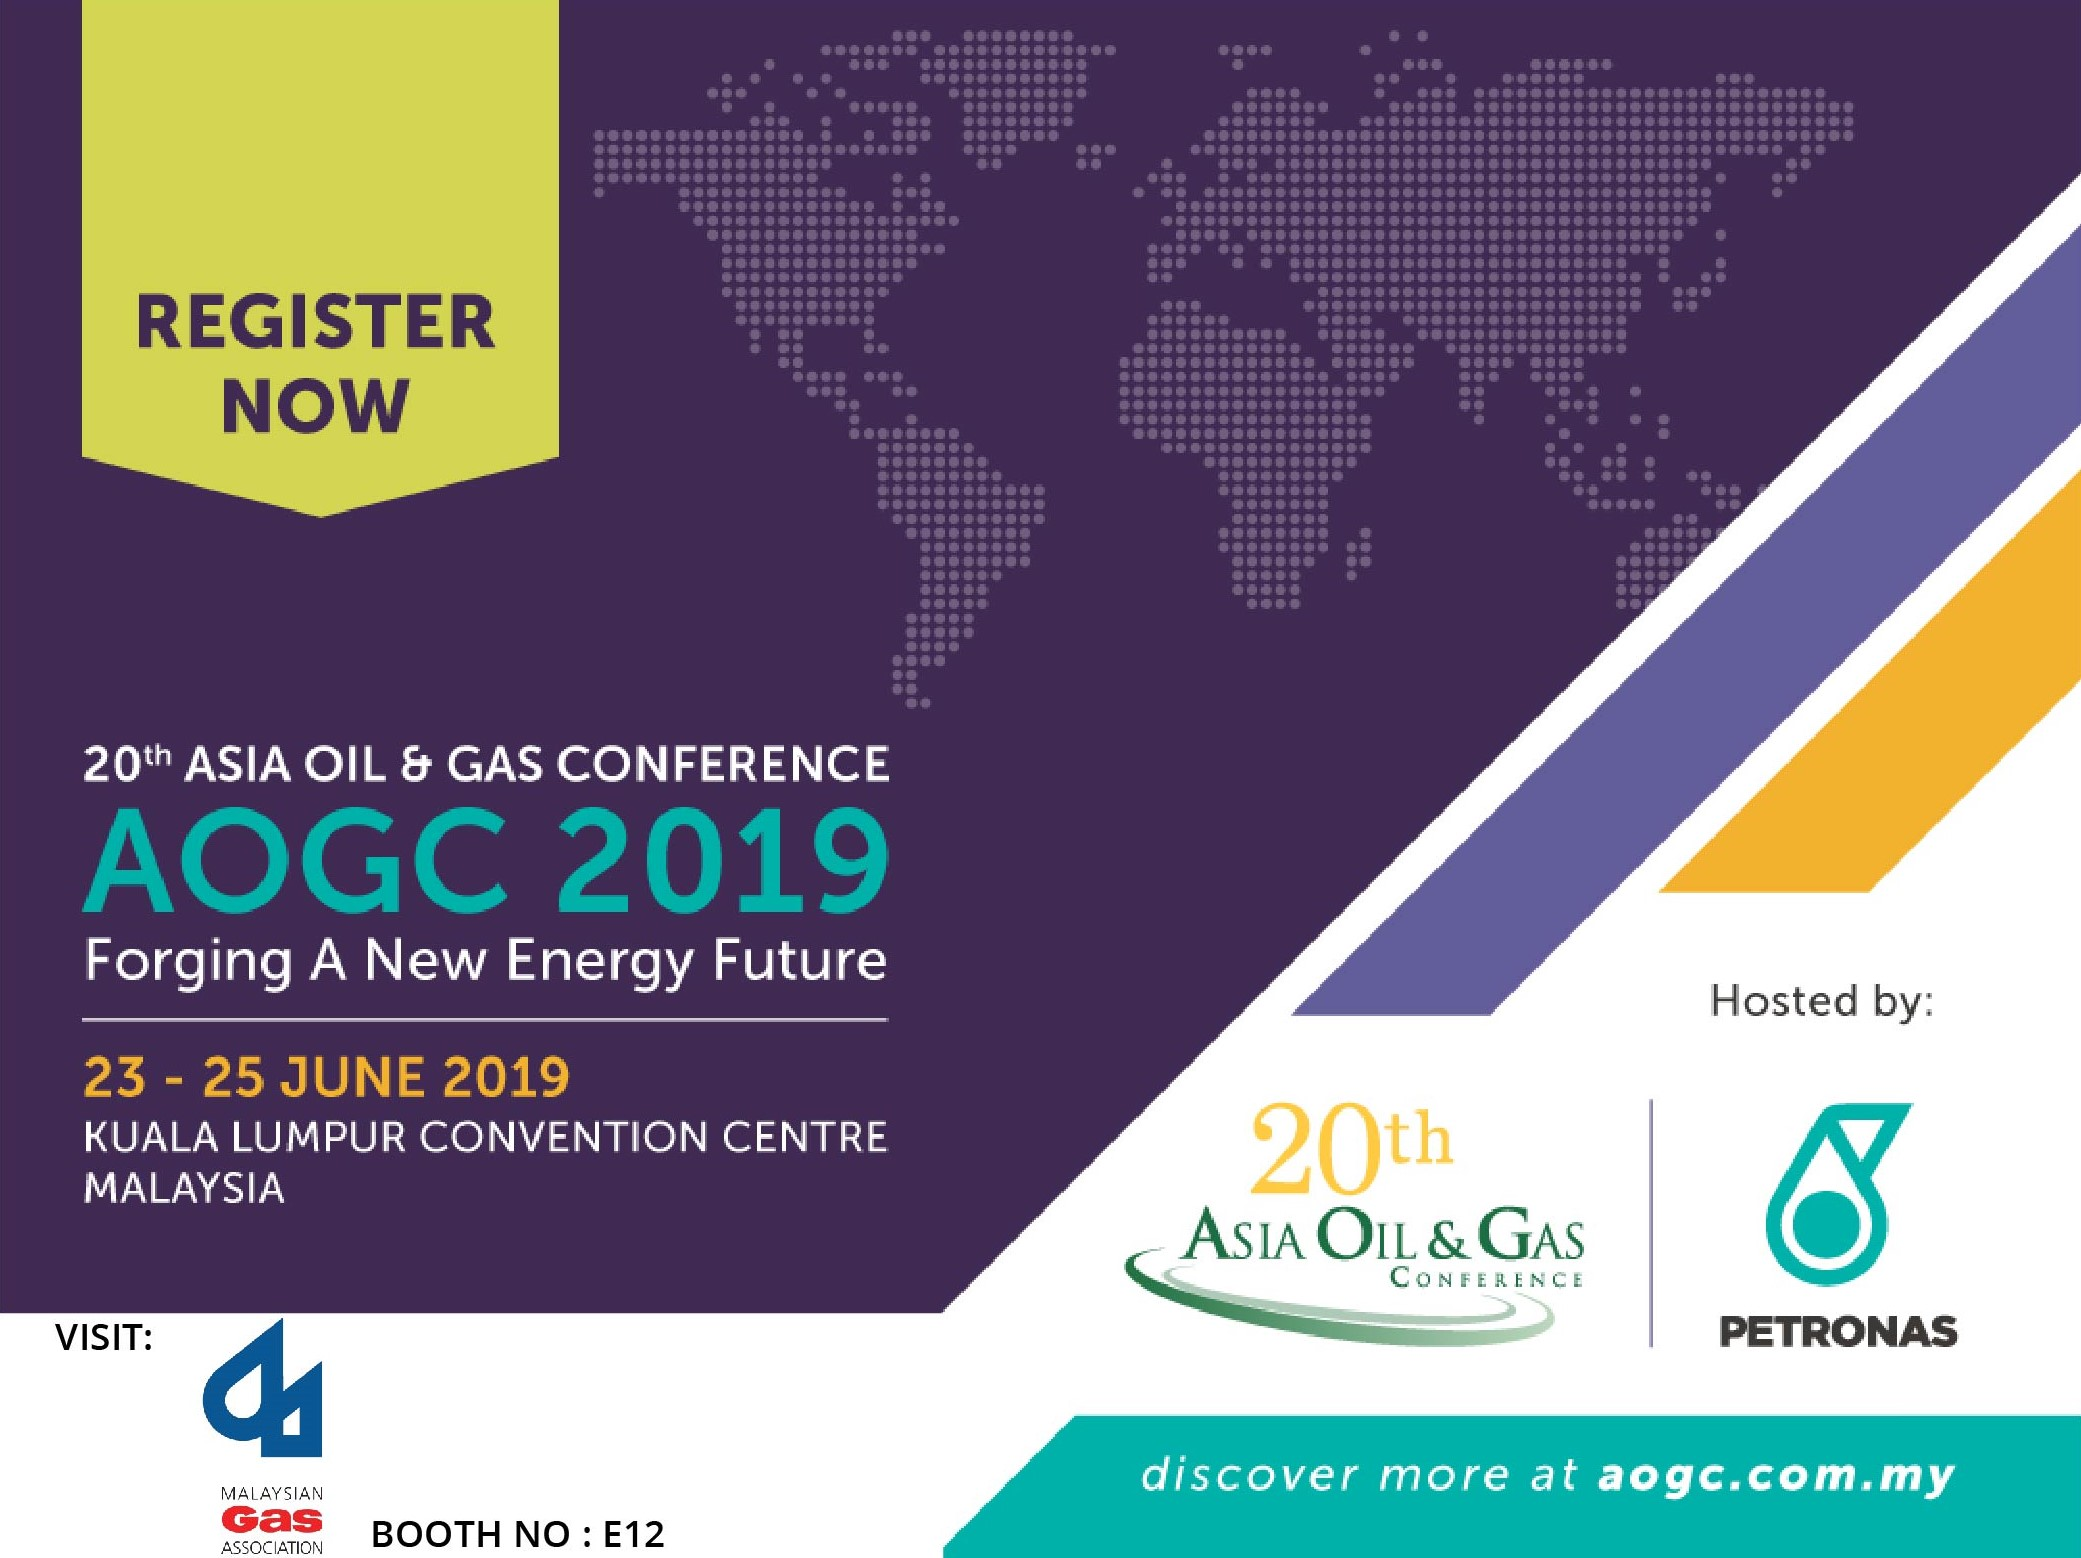 20th Asia Oil & Gas Conference 2019